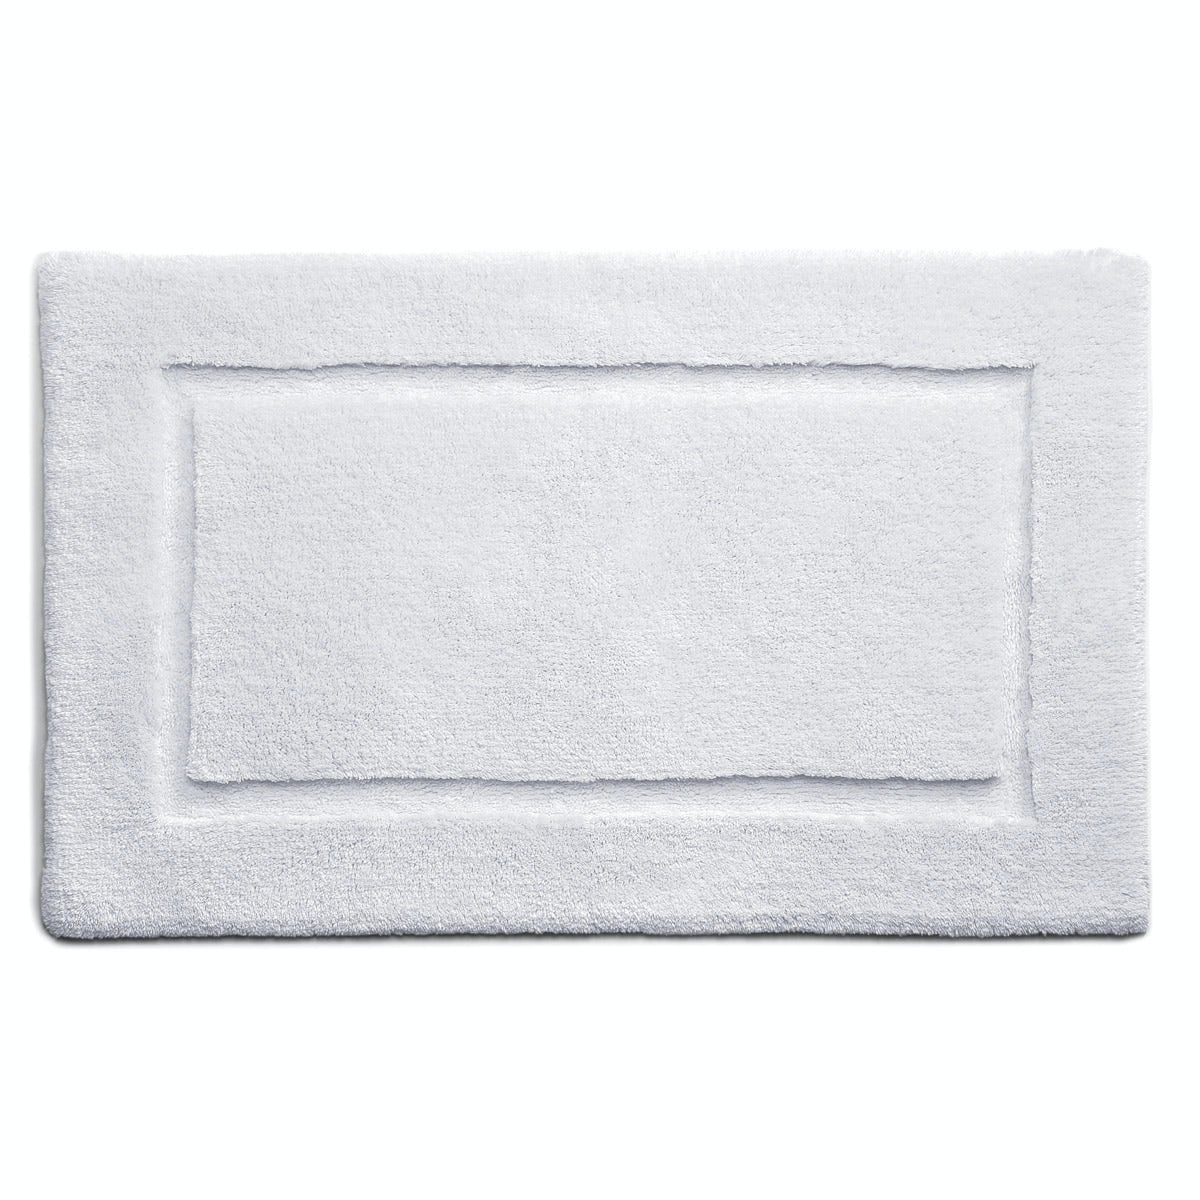 Hug Rug luxury bamboo border white bathroom mat 50 x 80cm